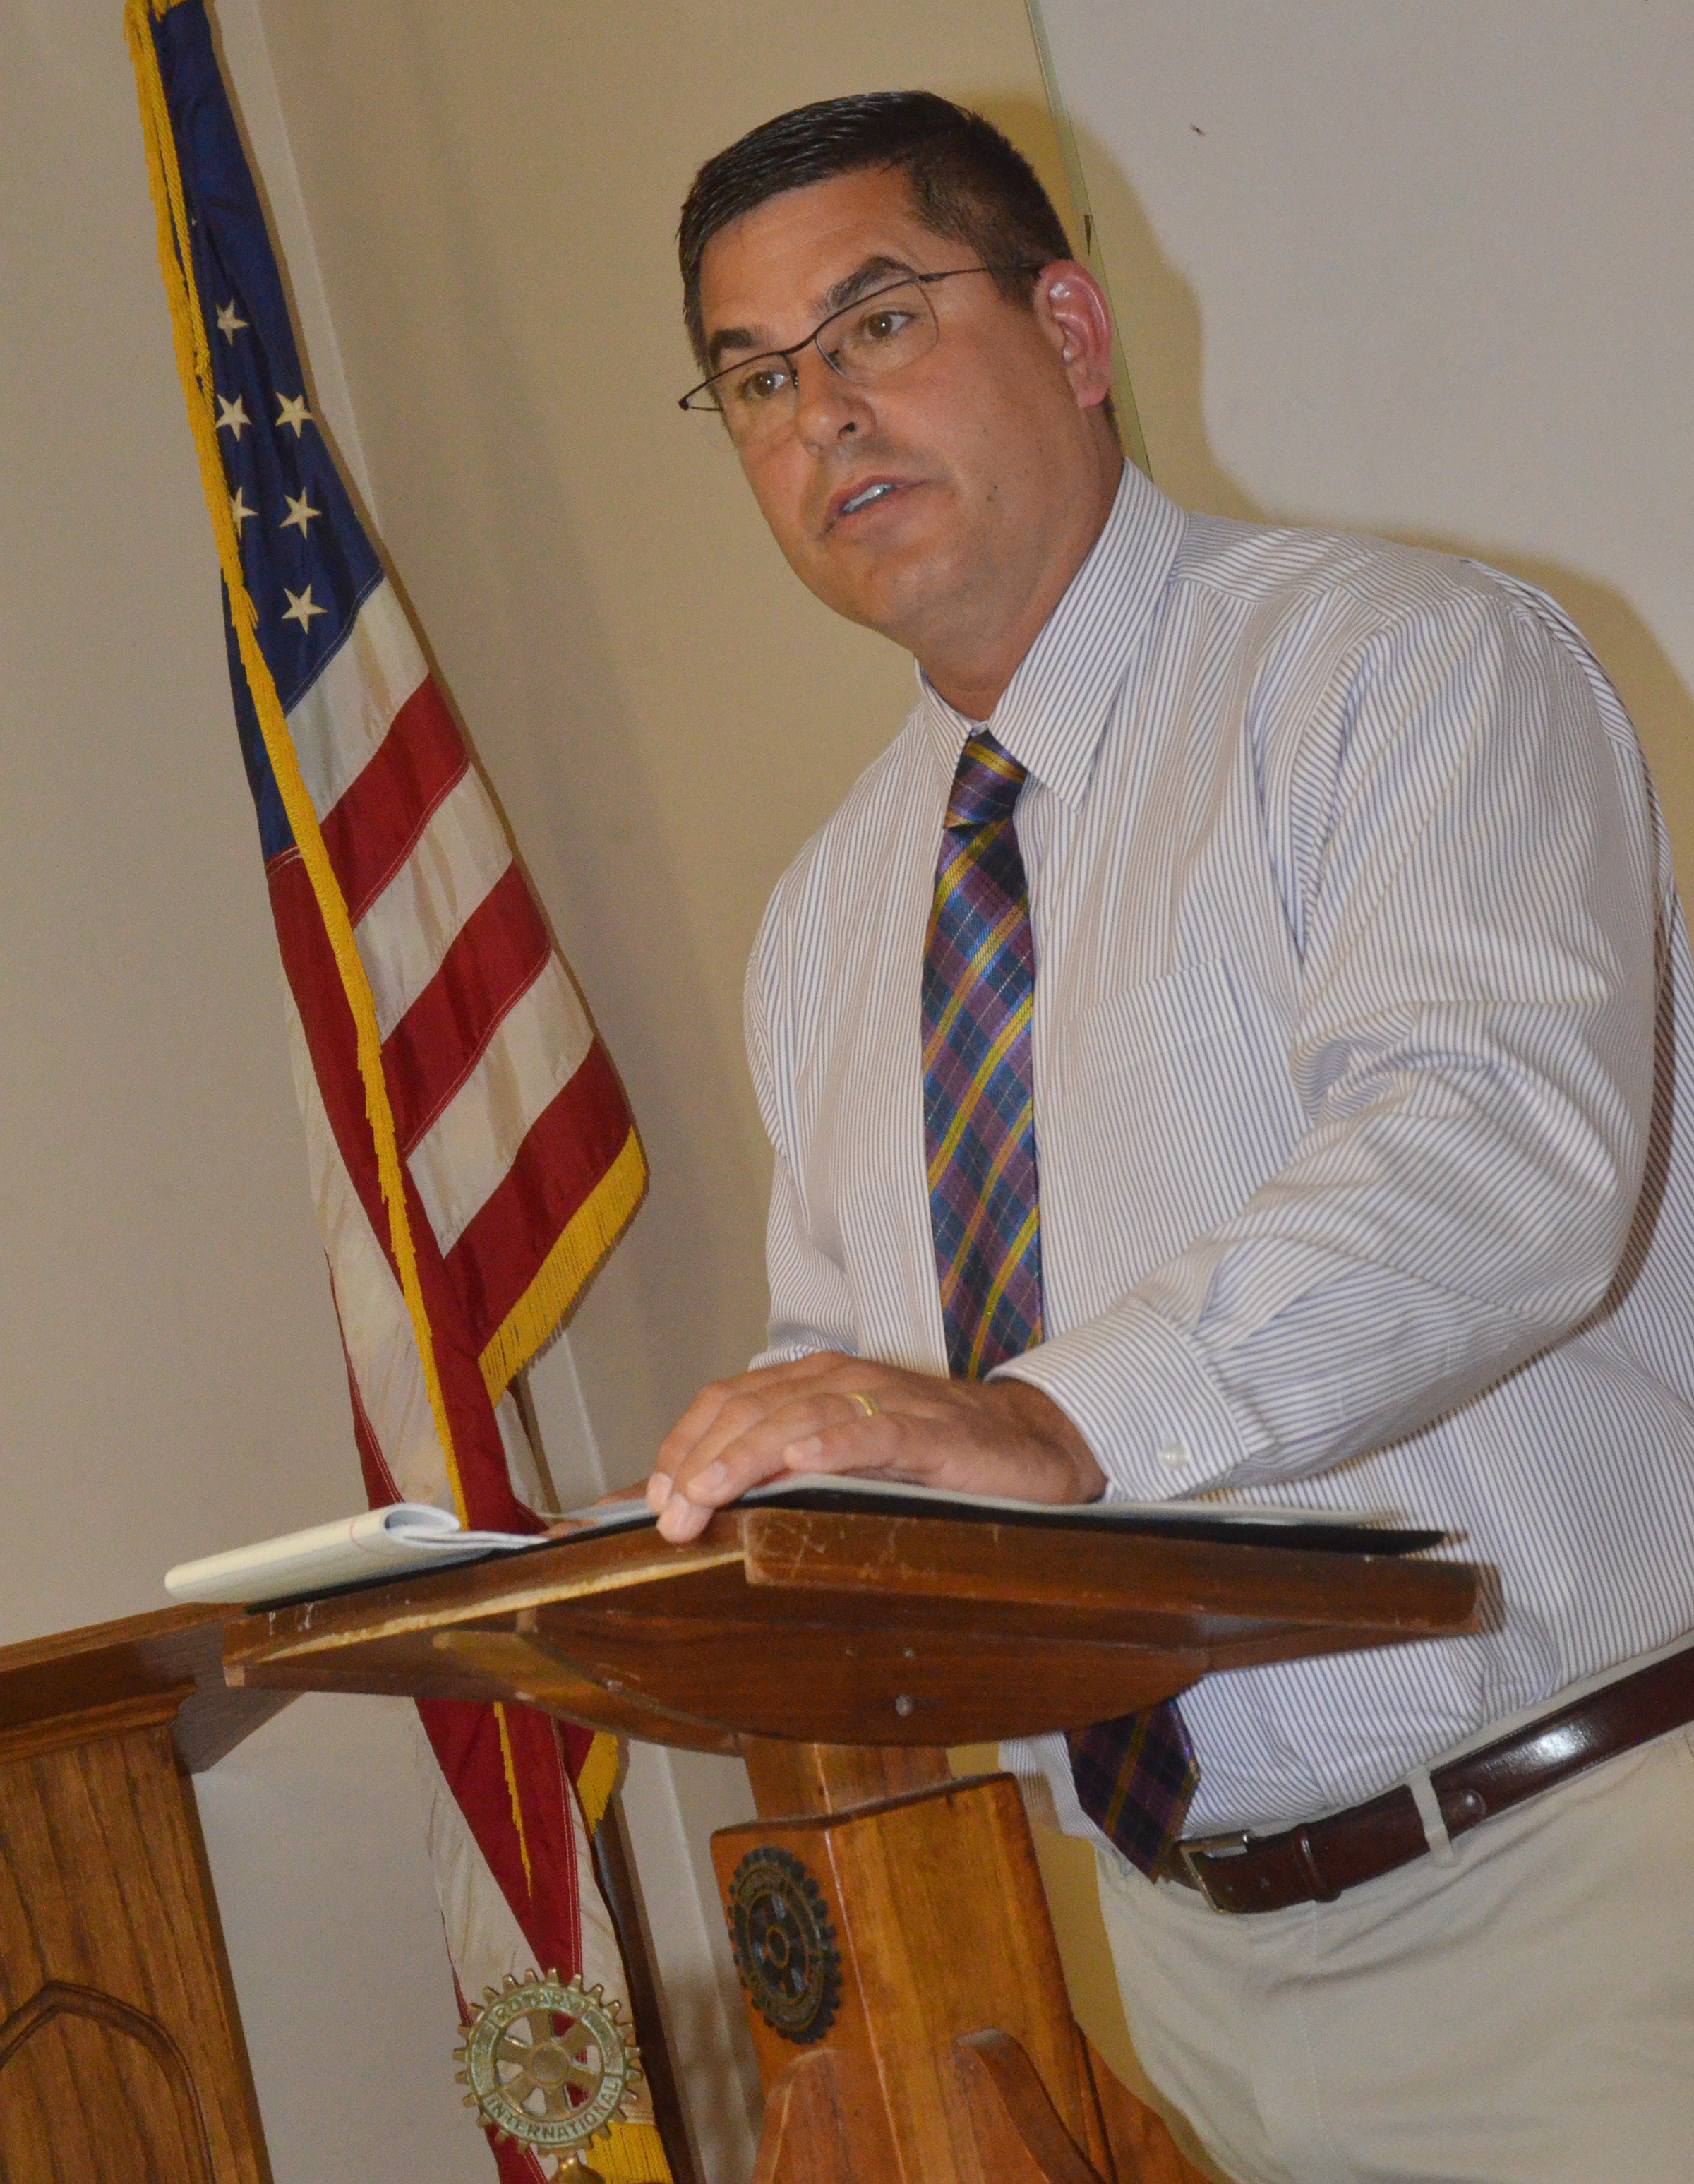 Campbellsville Independent Schools Superintendent Kirby Smith recently spoke to Campbellsville Rotary Club members about the great happenings at his school system.